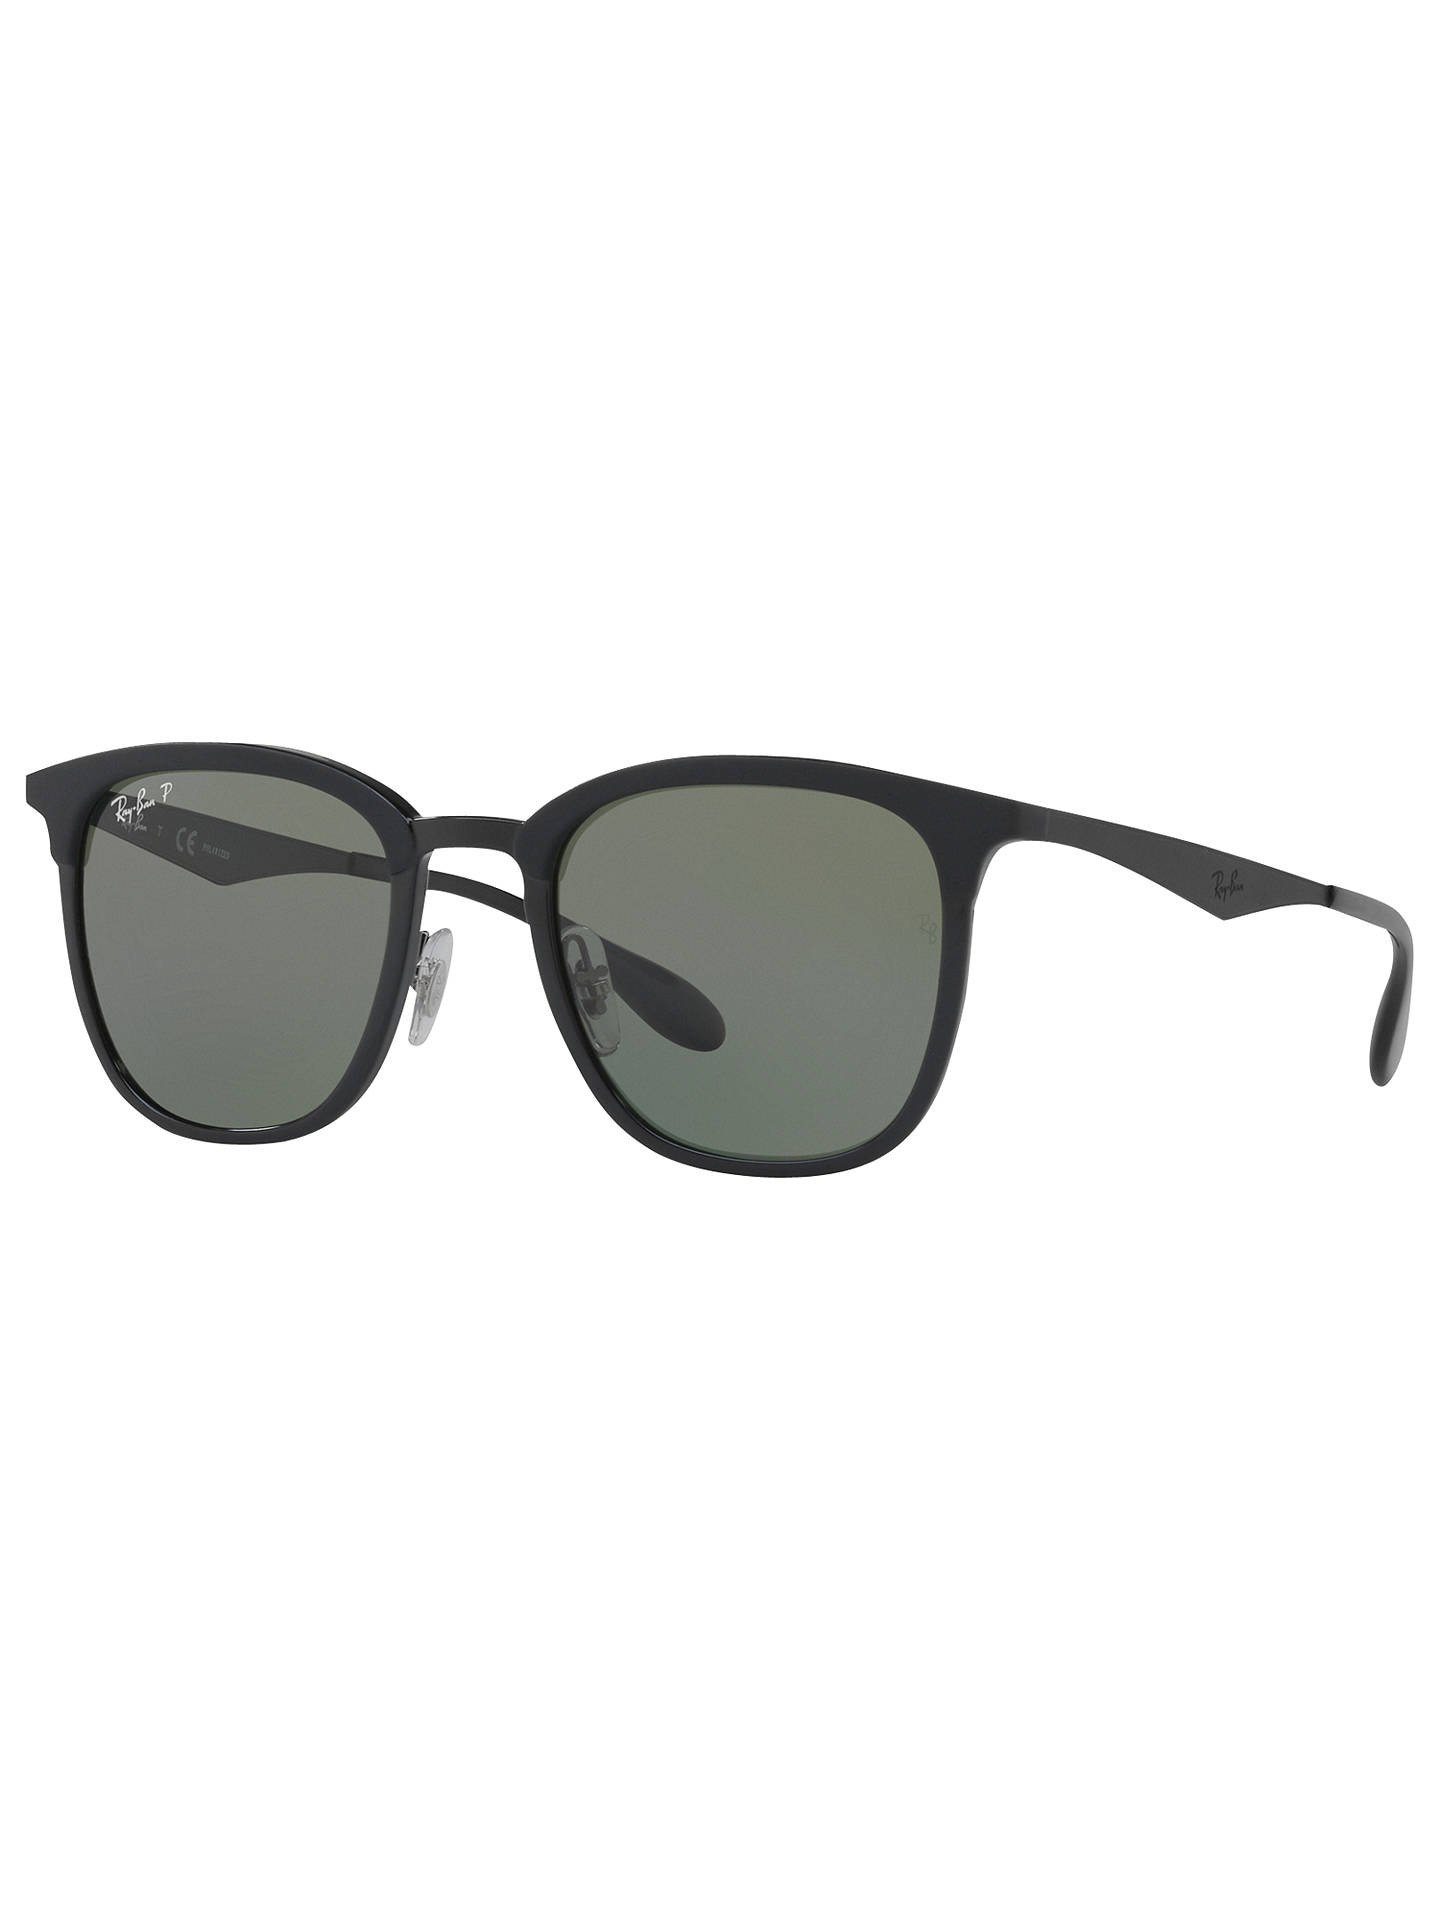 45be6d5efc6 Buy Ray-Ban RB4278 Polarised Square Sunglasses